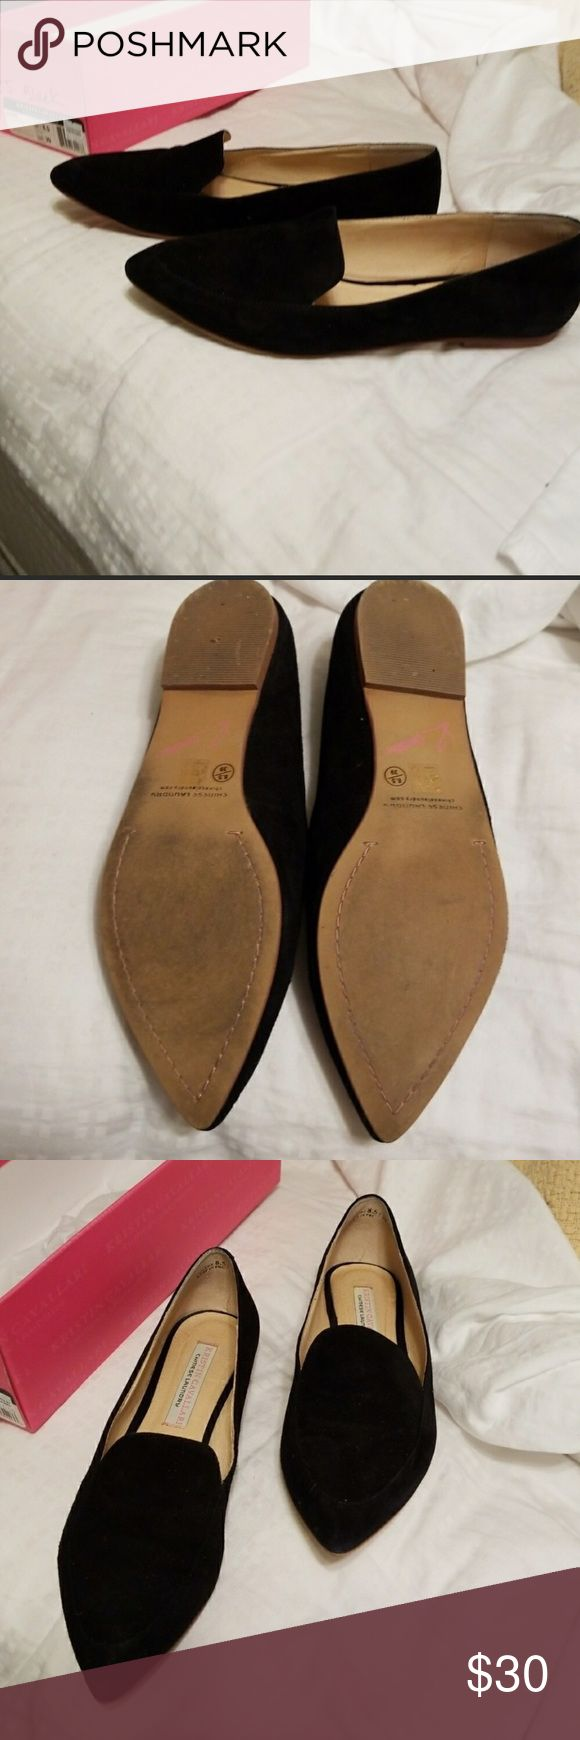 Kristin Cavallari- Chinese Laundry Black Flats Adorable black flats, worn a few times, Sz 8 1/2 Chinese Laundry Shoes Flats & Loafers